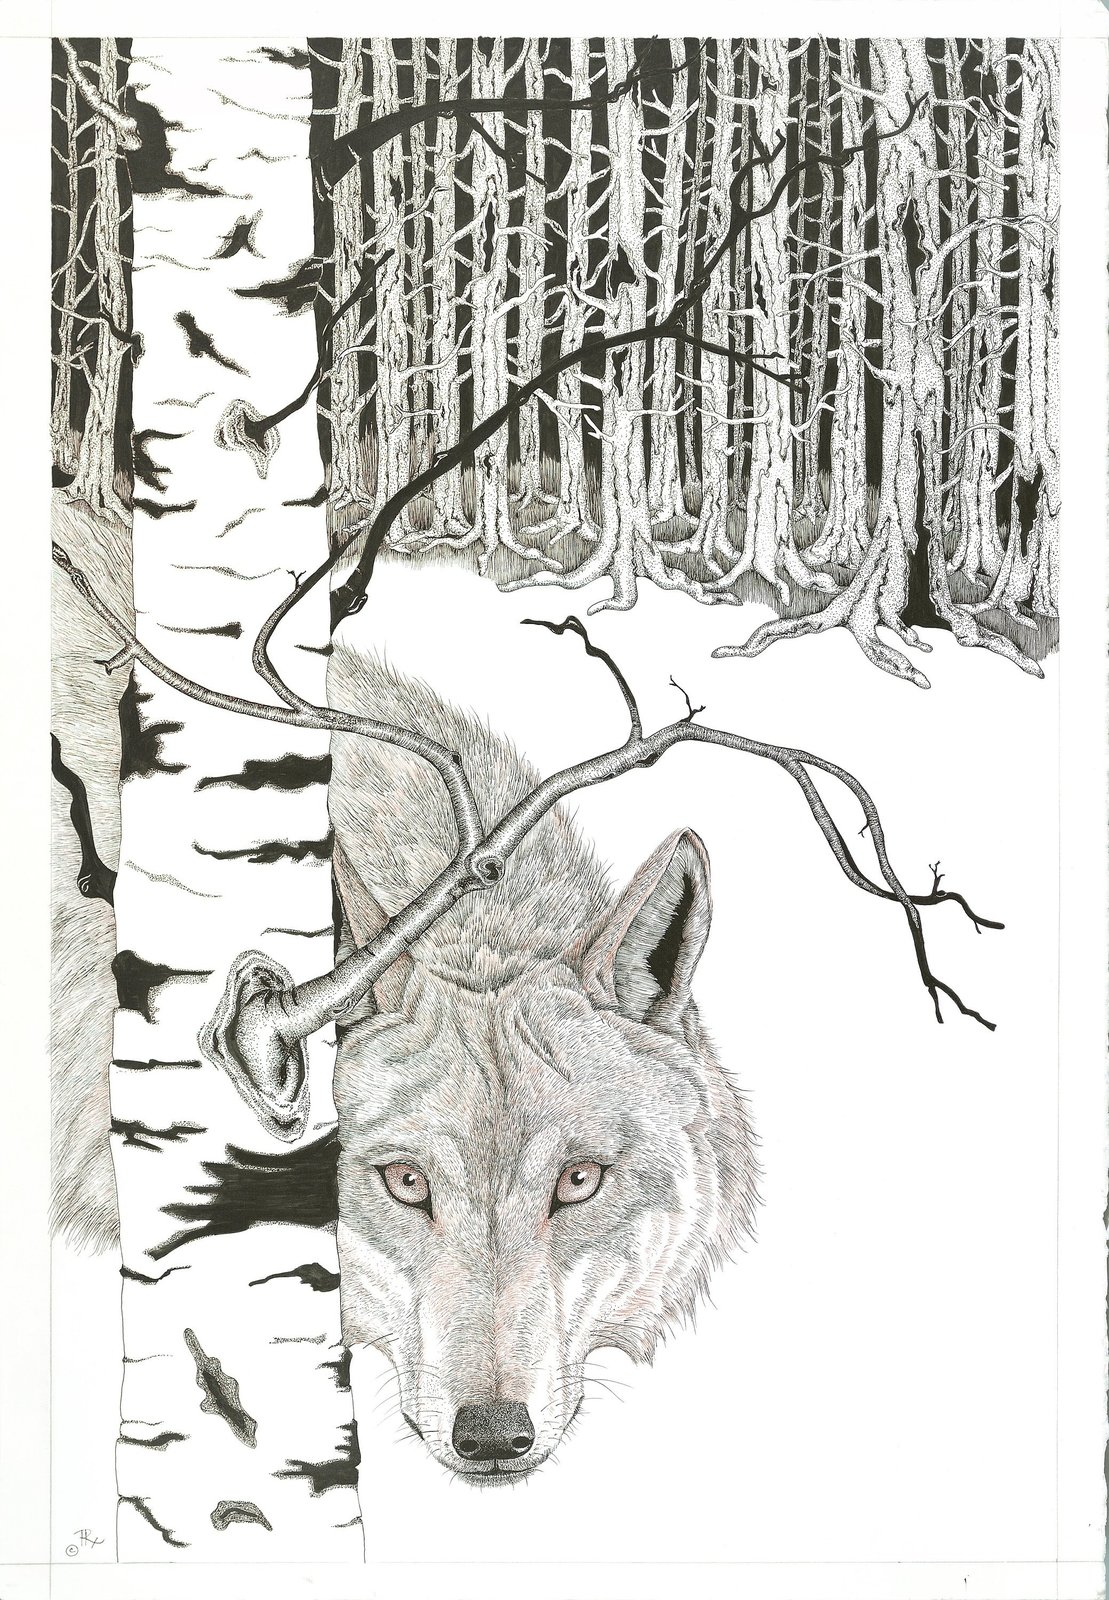 Framed Wildlife Art Print by artist, Pen and Ink, Wolf, Animal Wildlife Drawing,